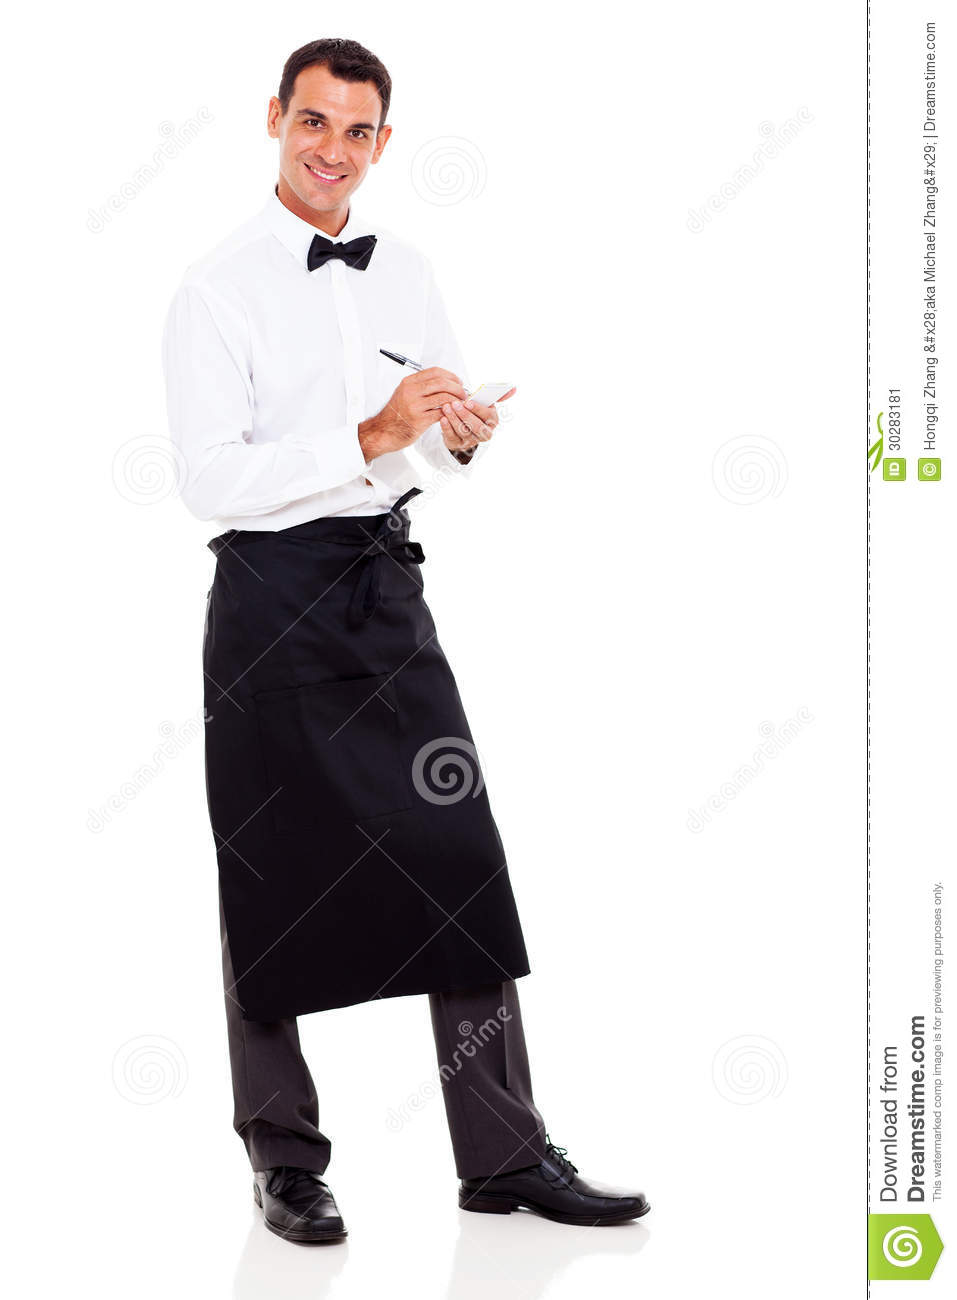 Waiter taking orders stock image Image of industry